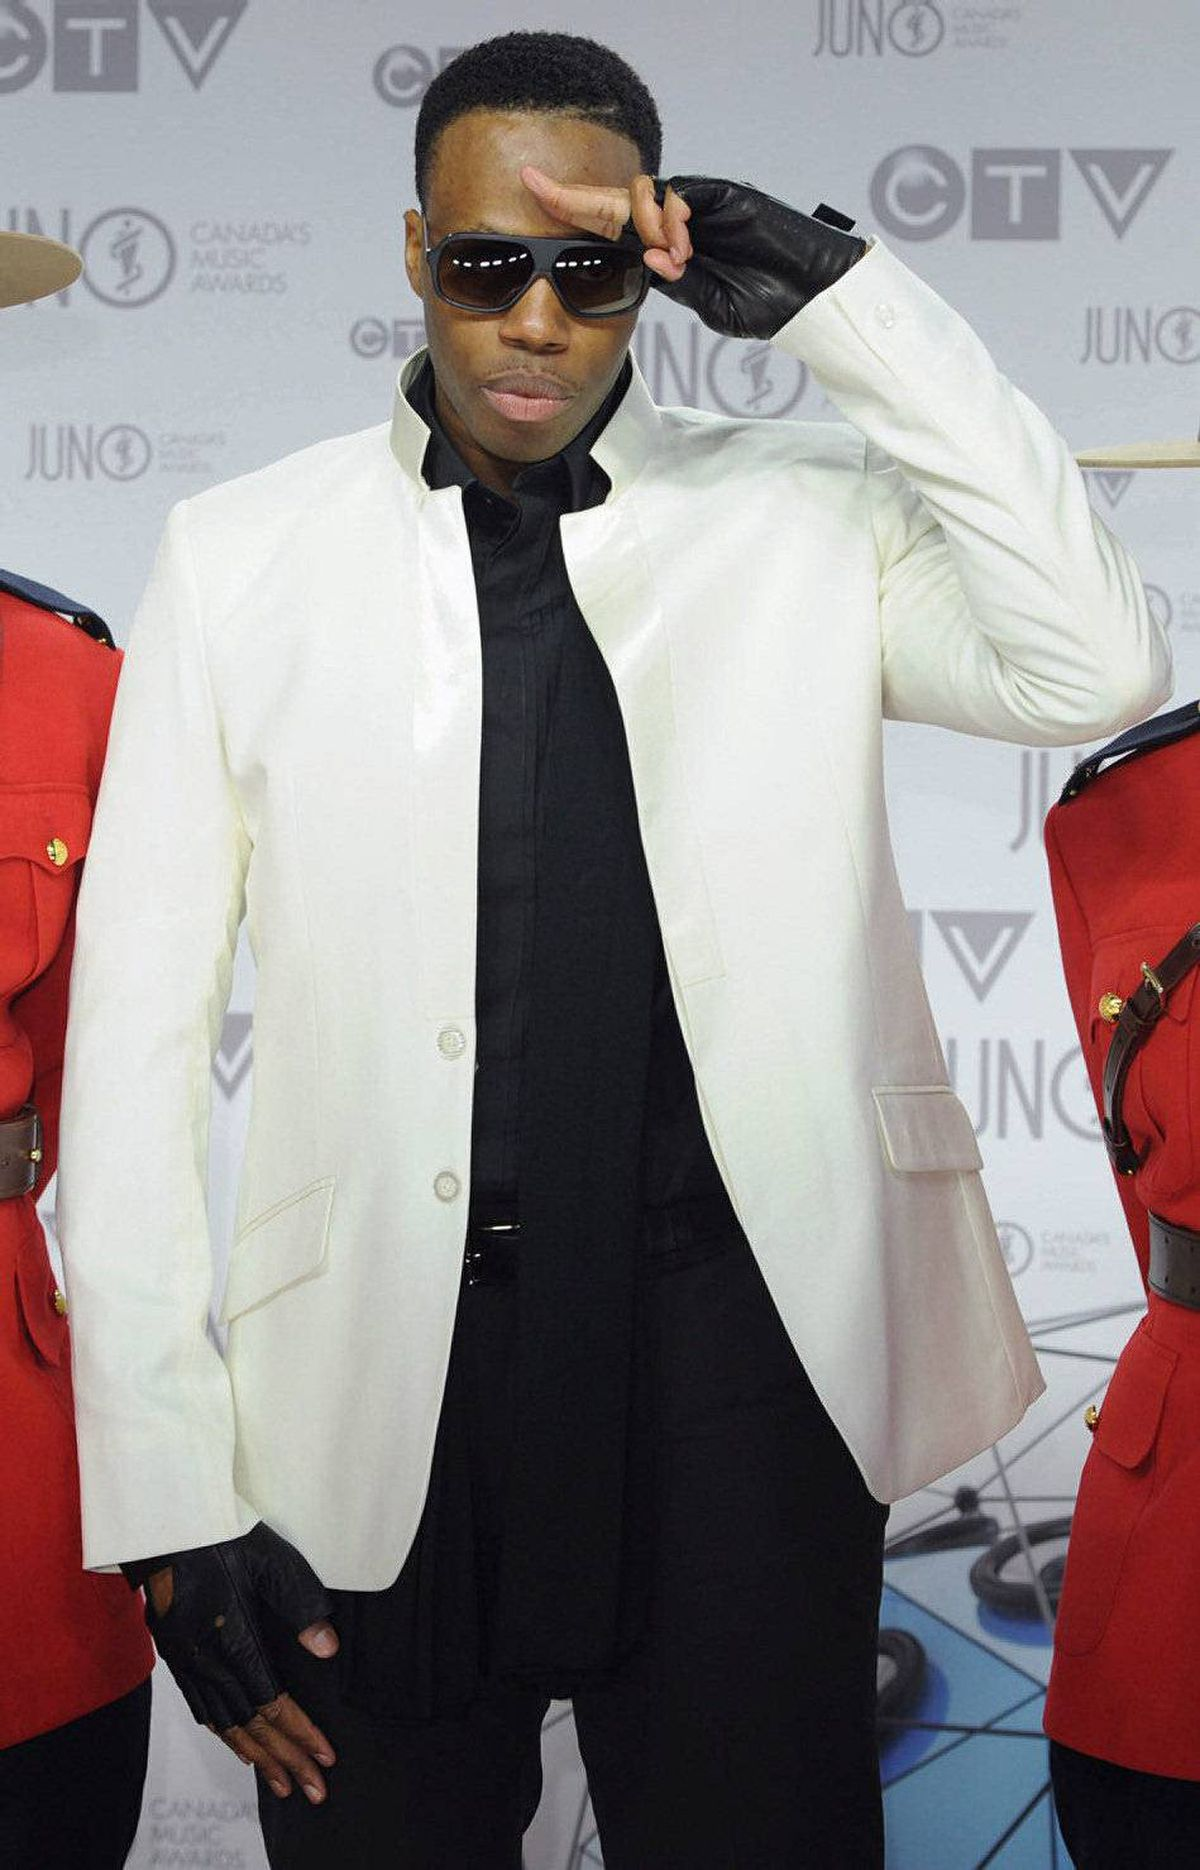 Kardinal Offishal (Jason D. Harrow) poses for photographers as he arrives on the red carpet at the Juno Awards in Ottawa, Sunday April 1, 2012.